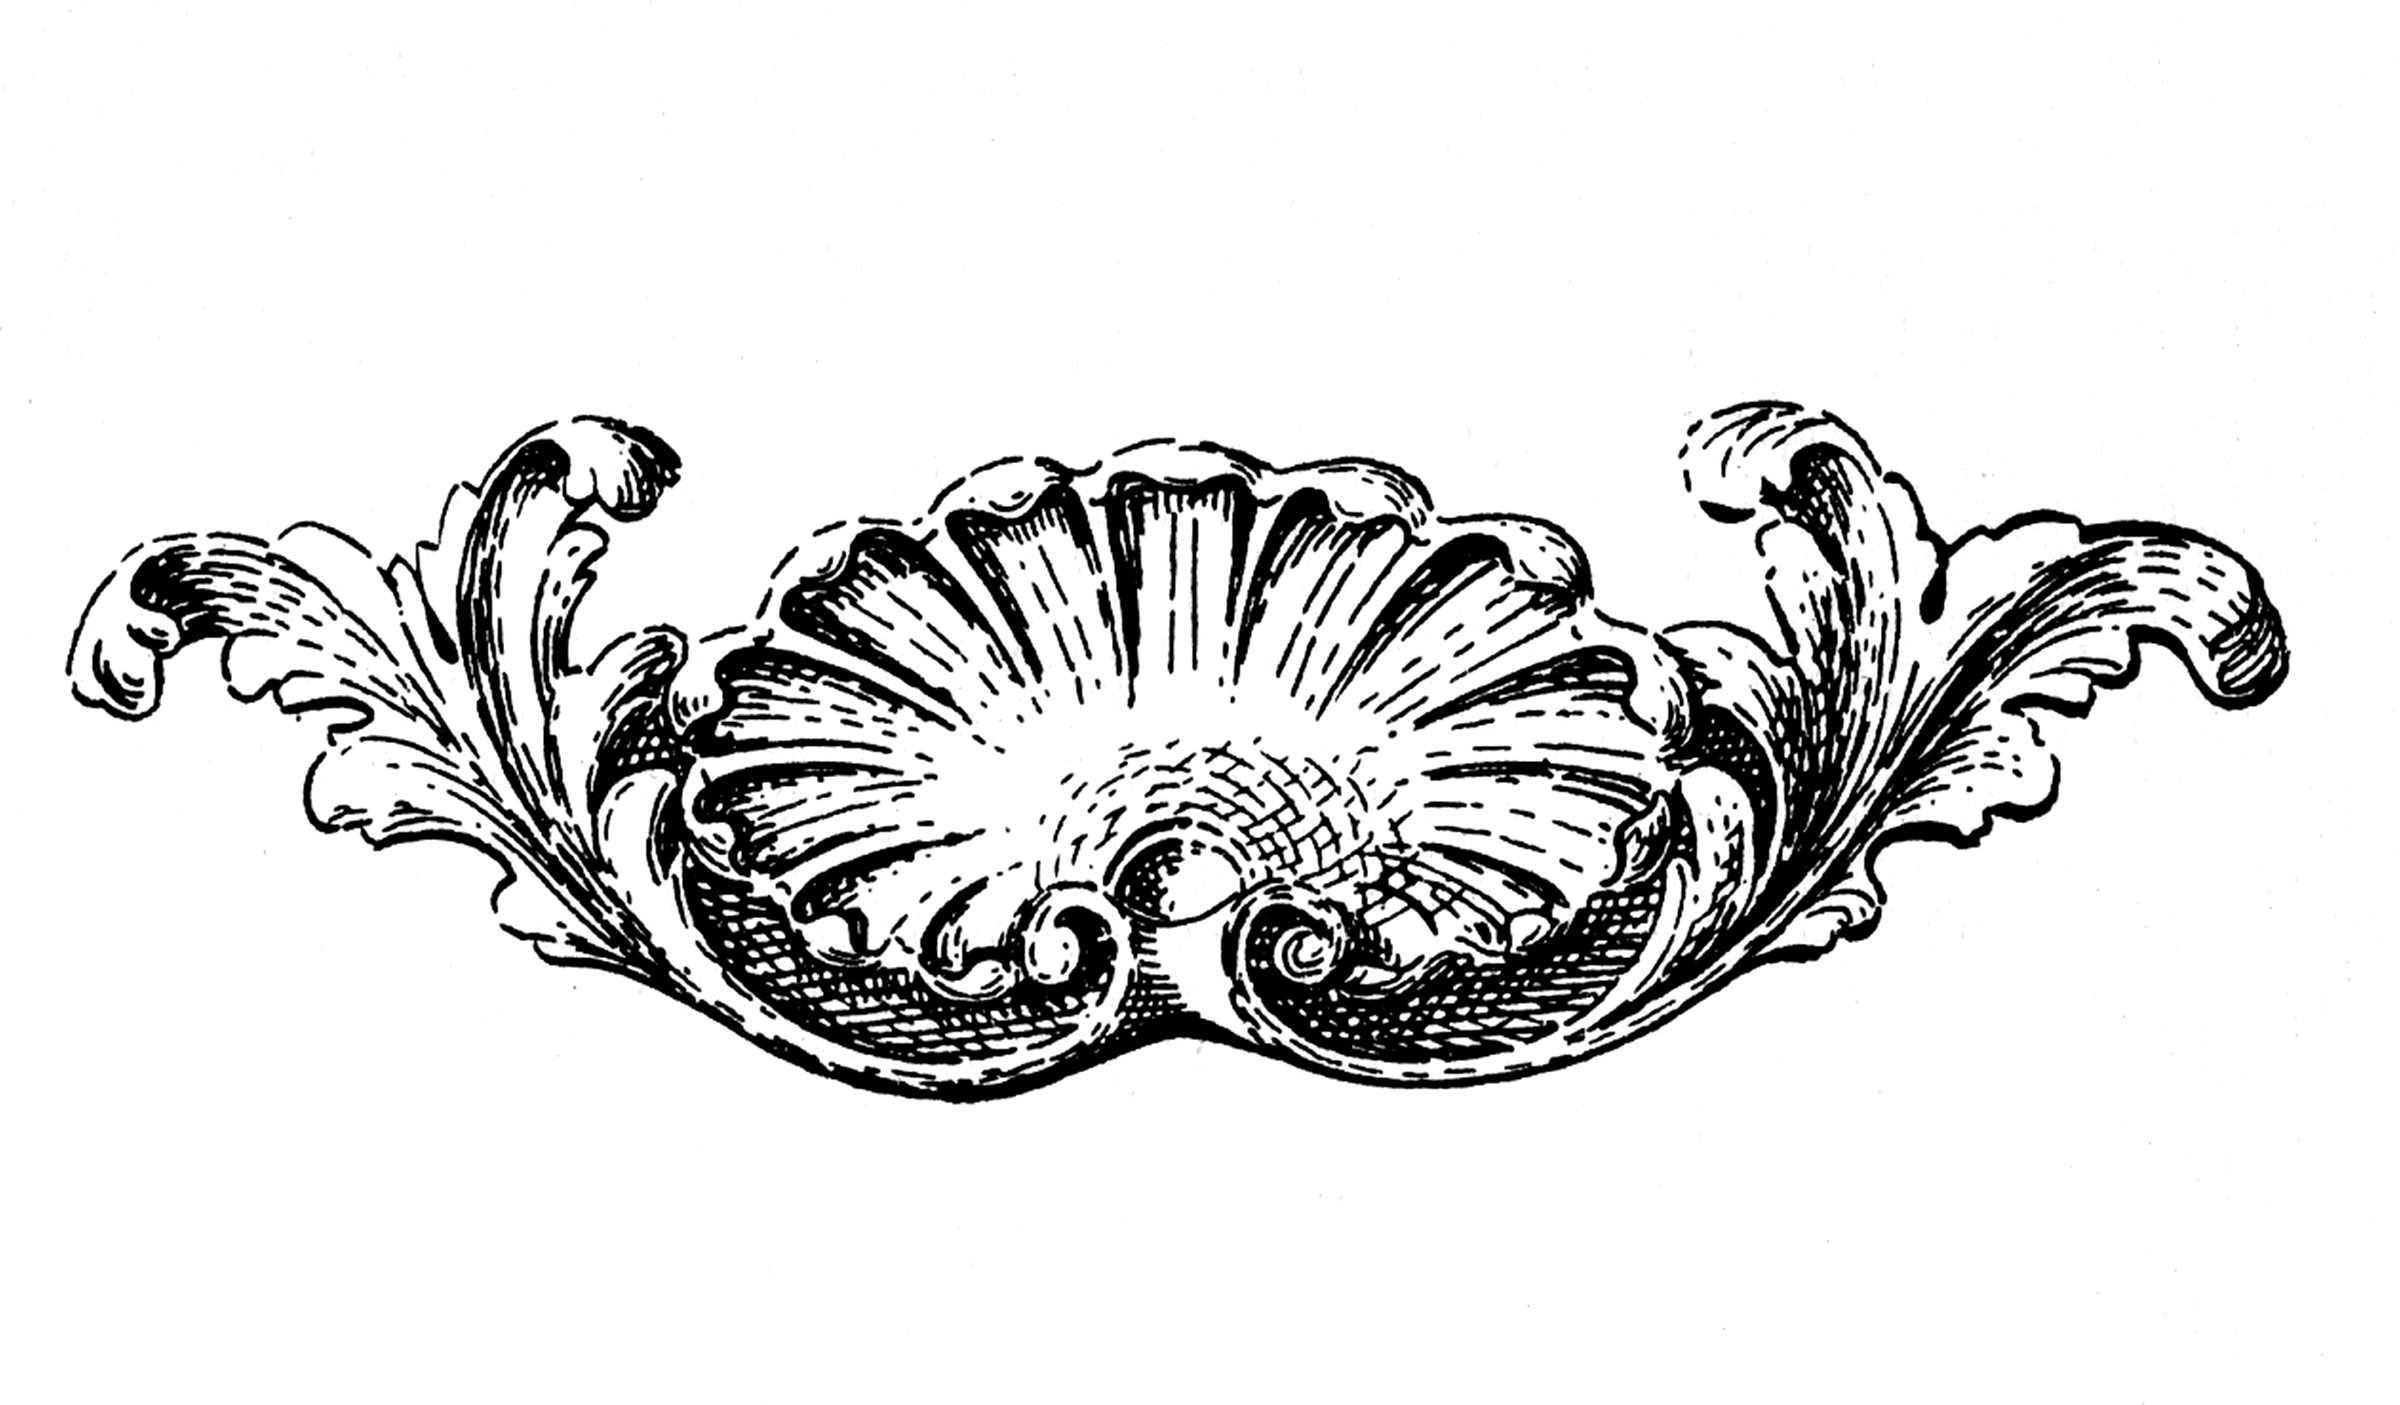 Shell pattern clipart victorian image black and white stock 10 Ornamental Shell Clipart Images - The Graphics Fairy image black and white stock